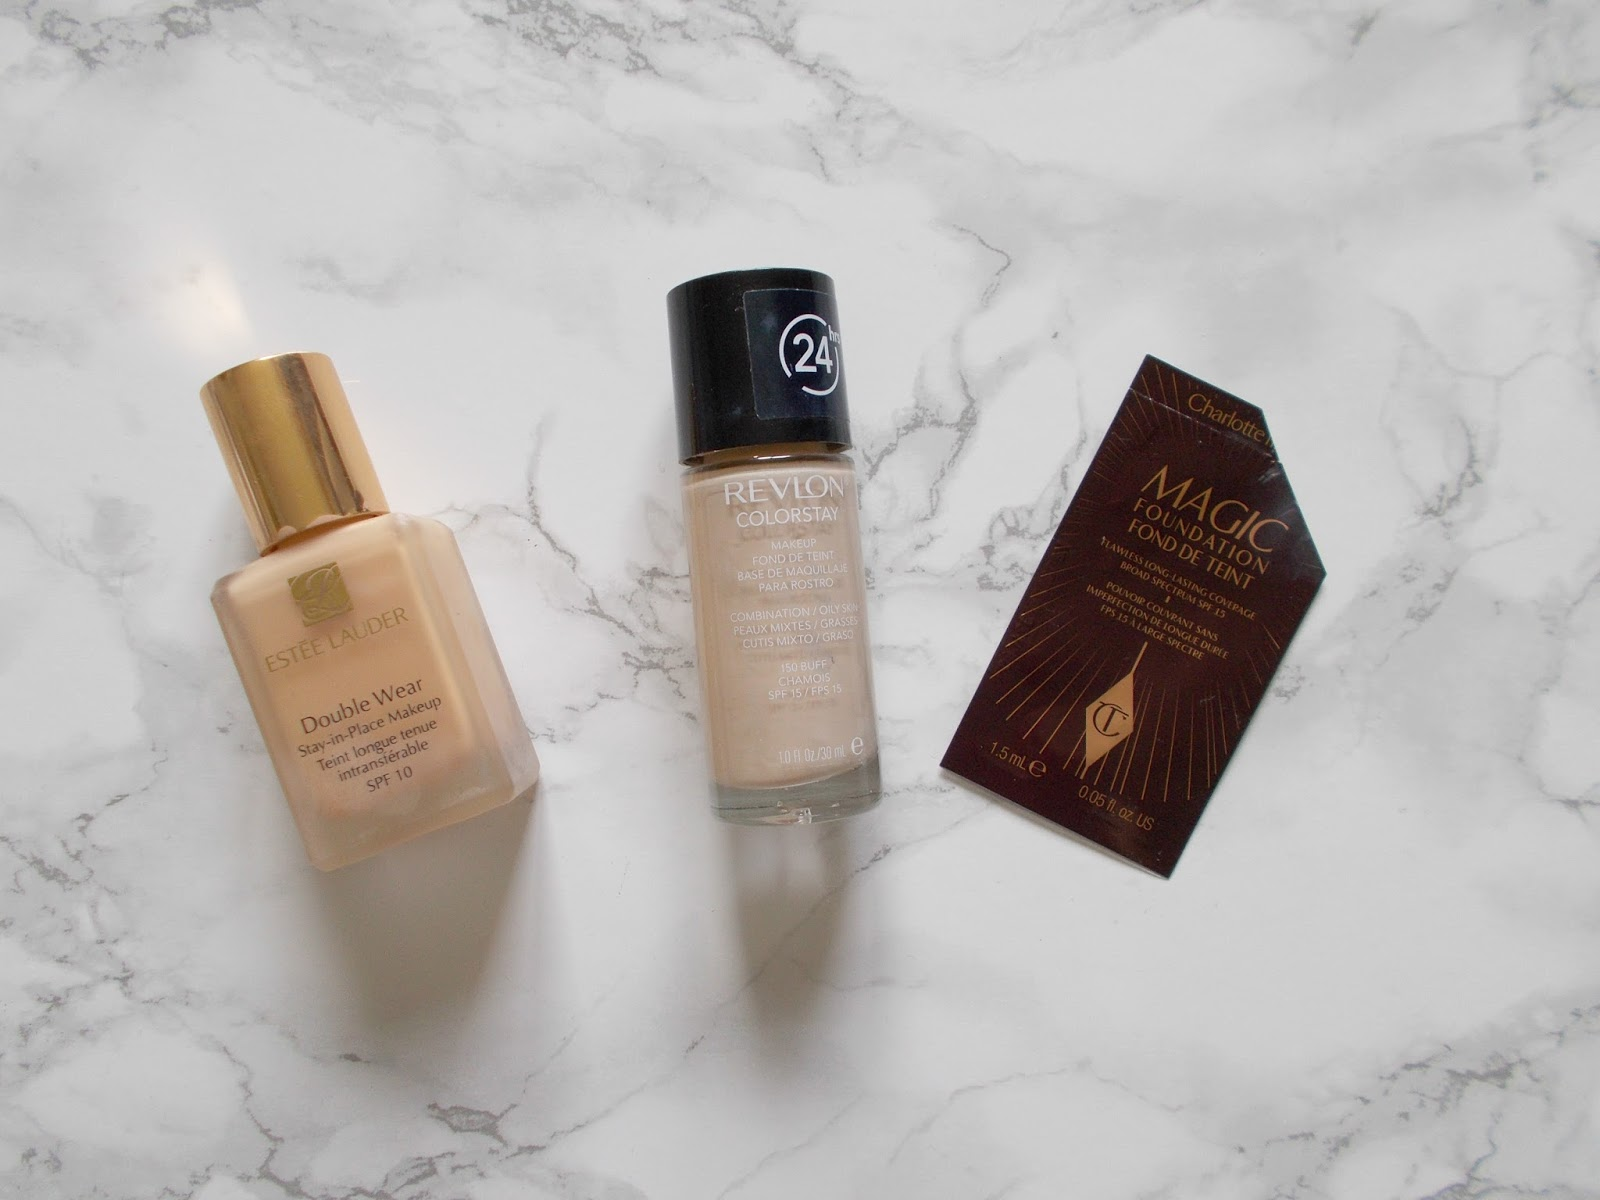 makeup empties review estee lauder double wear desert beige revlon colourstay charlotte tilbury magic foundation